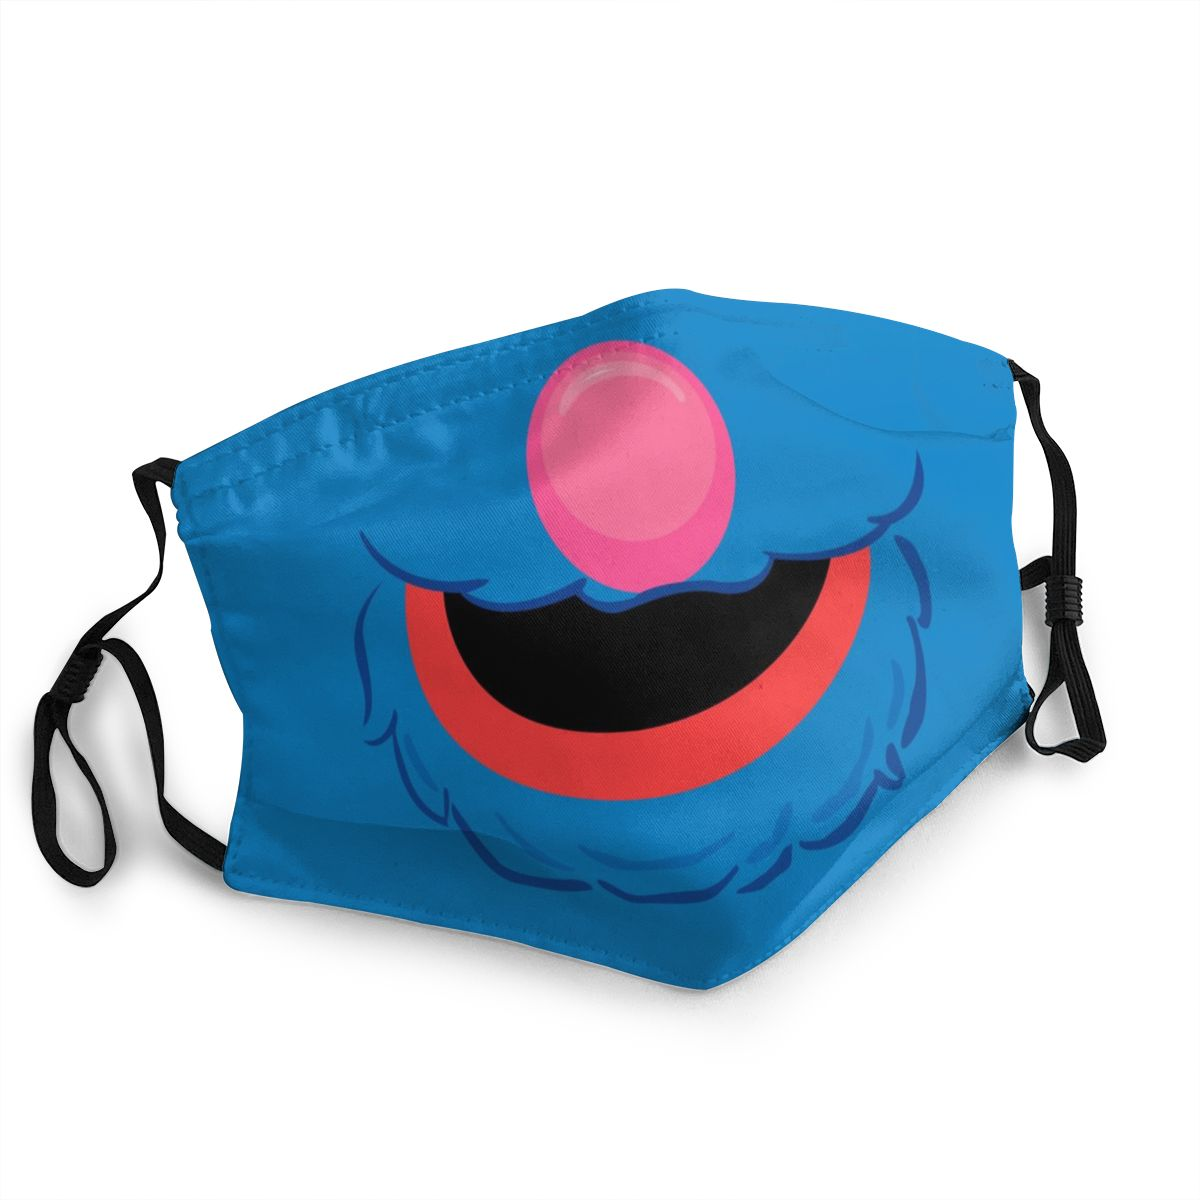 Blue Friend Sesame Street Non-Disposable Mouth Face Mask Cute Cartoon Anti Bacterial Dustproof Mask Protection Respirator Muffle